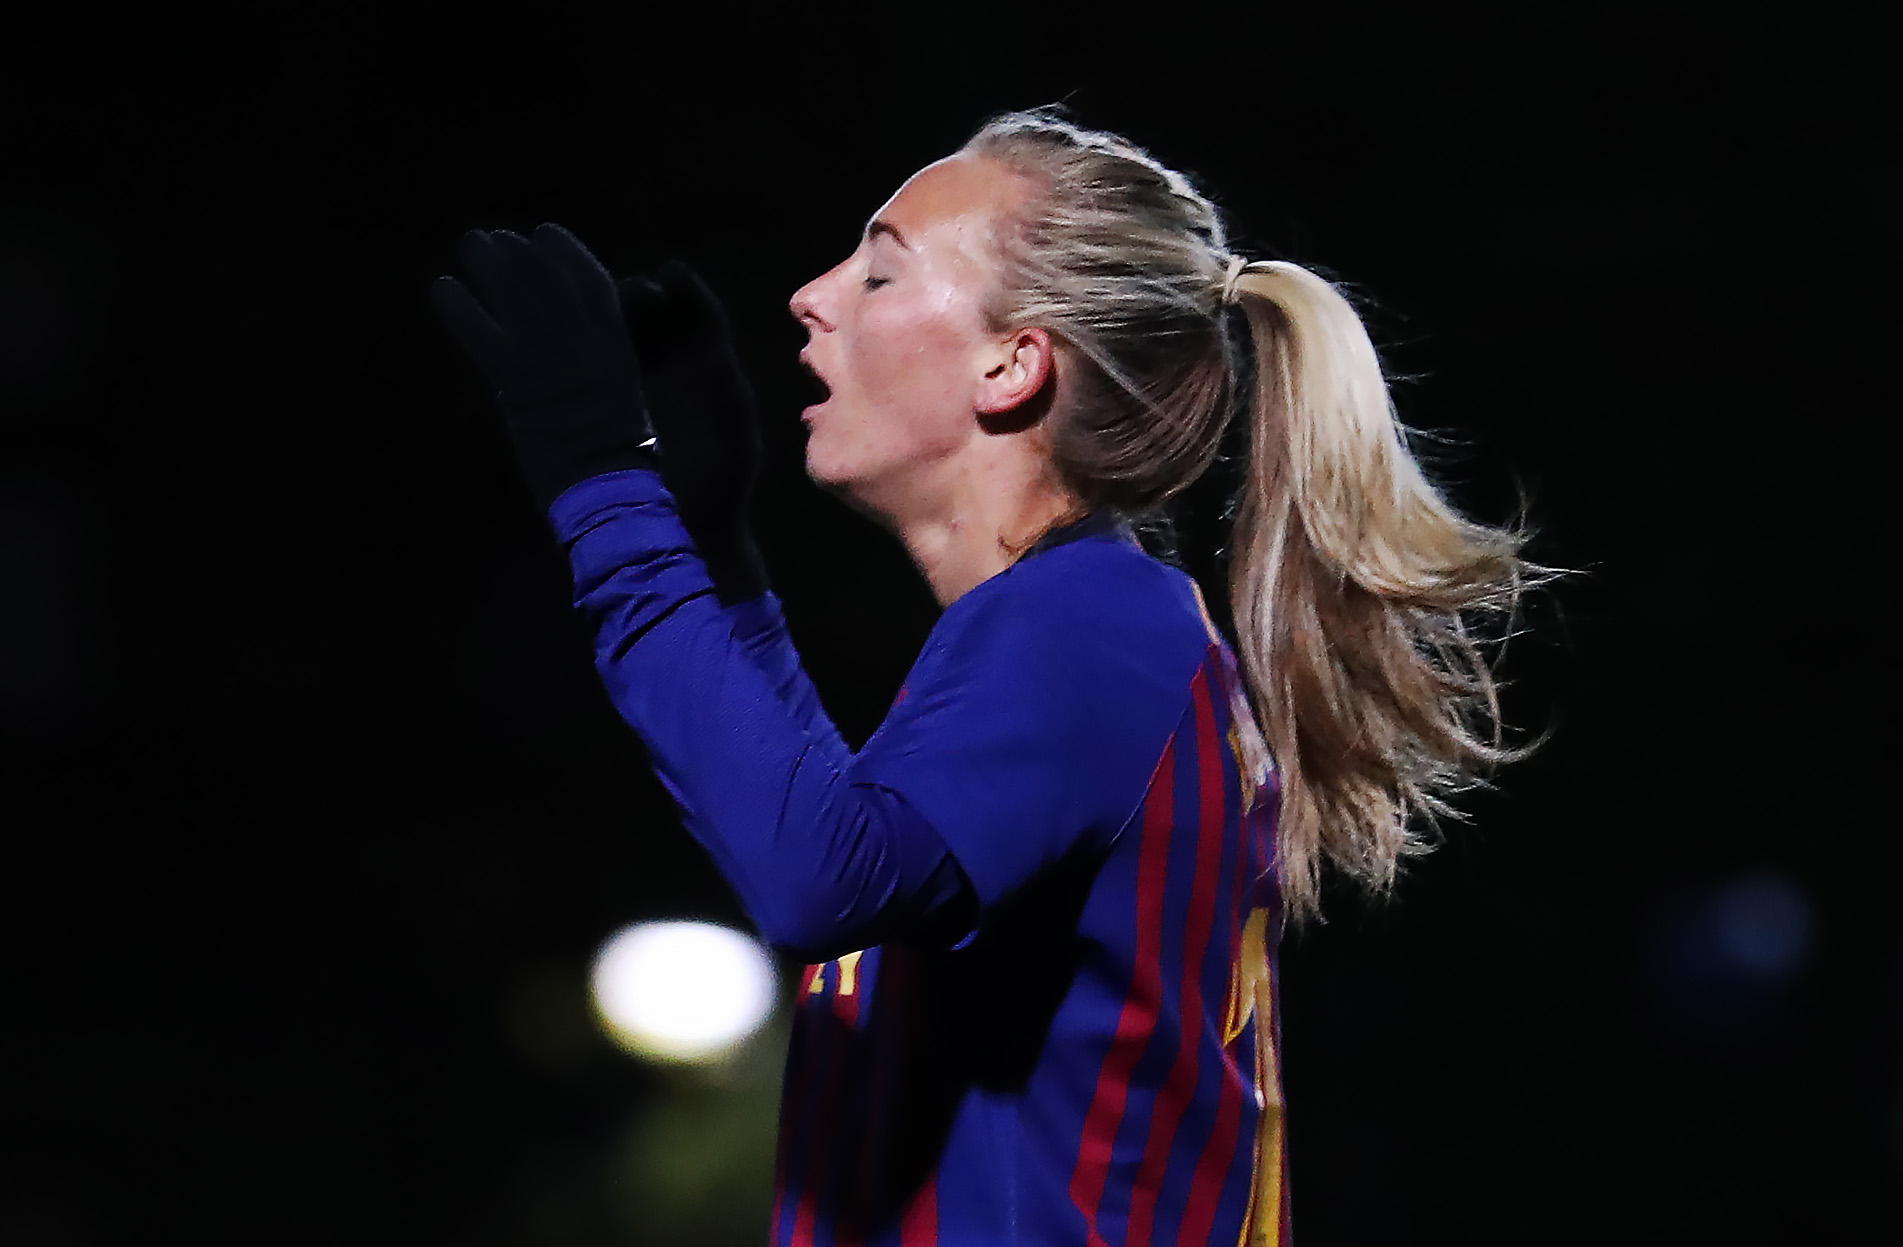 Barcelona Femeni set for Champions League final against Lyon - Barca